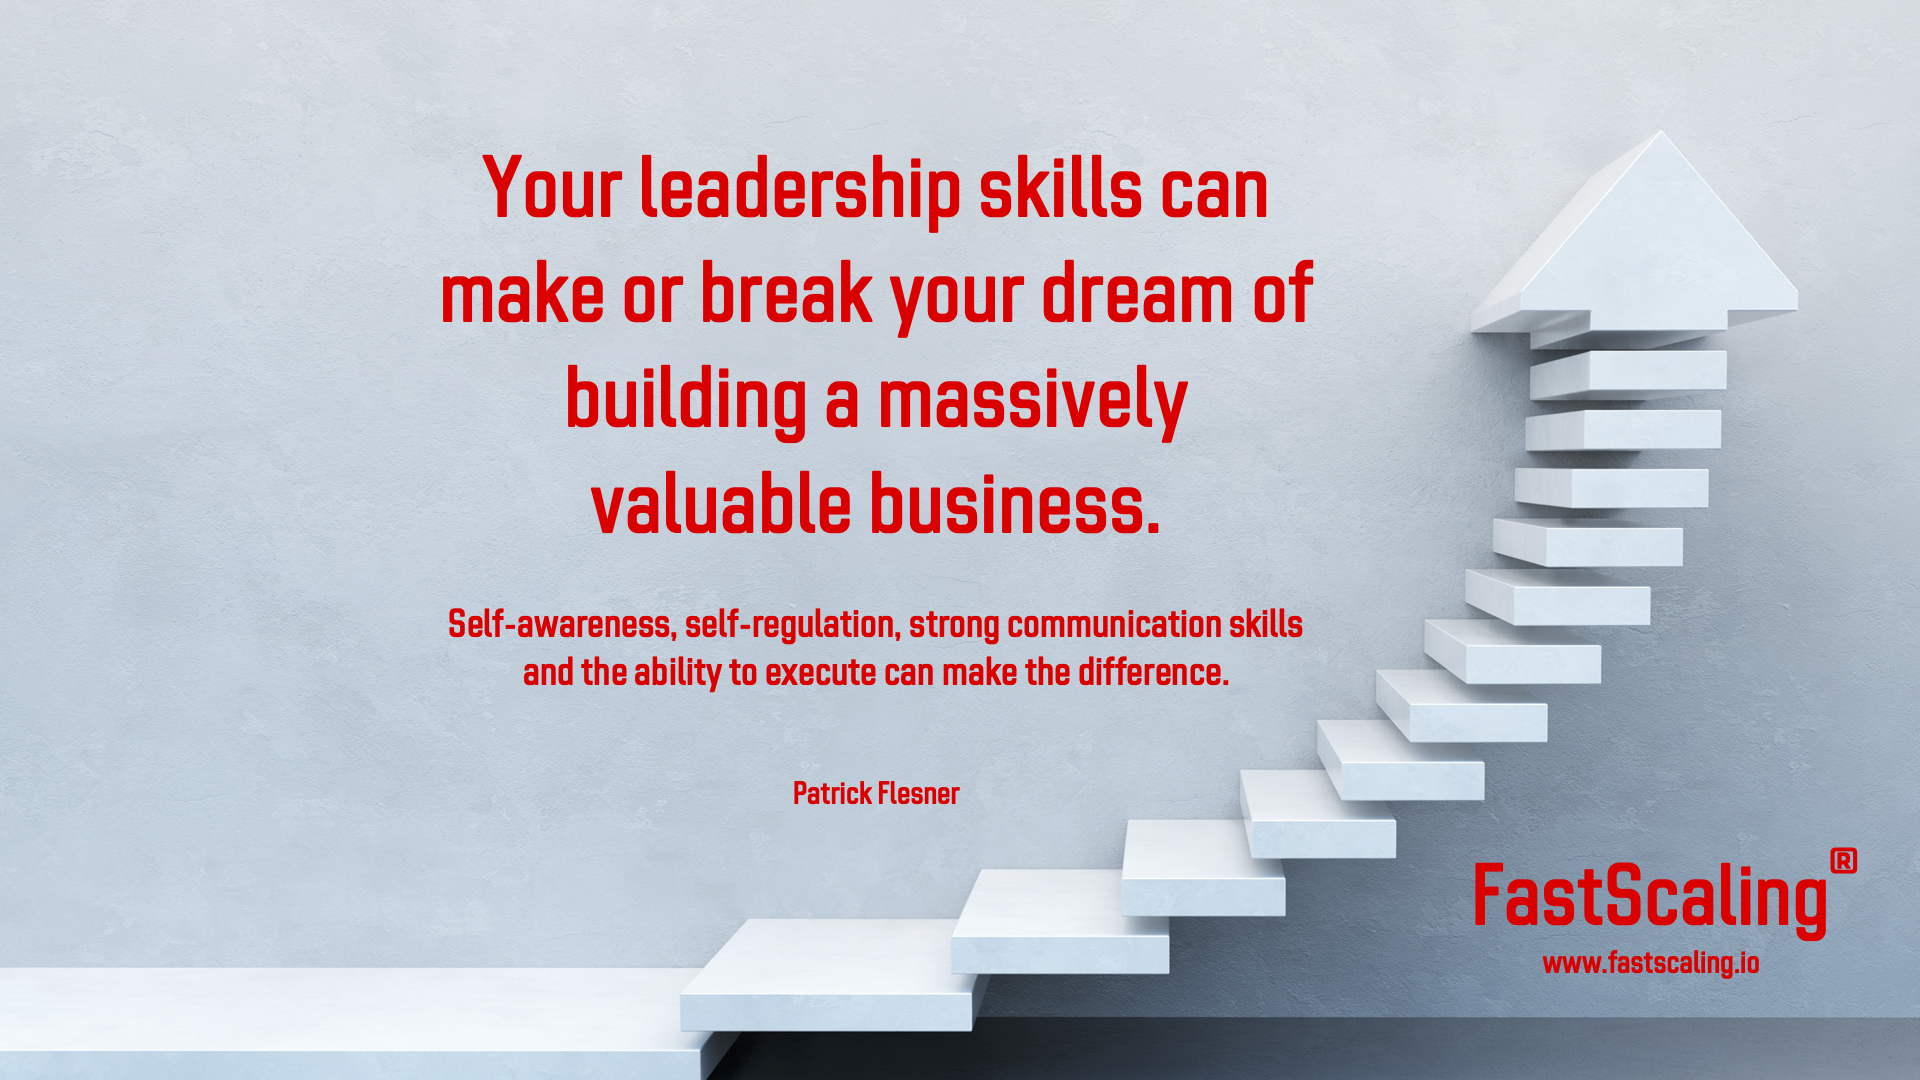 Your Leadership Skills Can Make or Break Your High Growth Dream